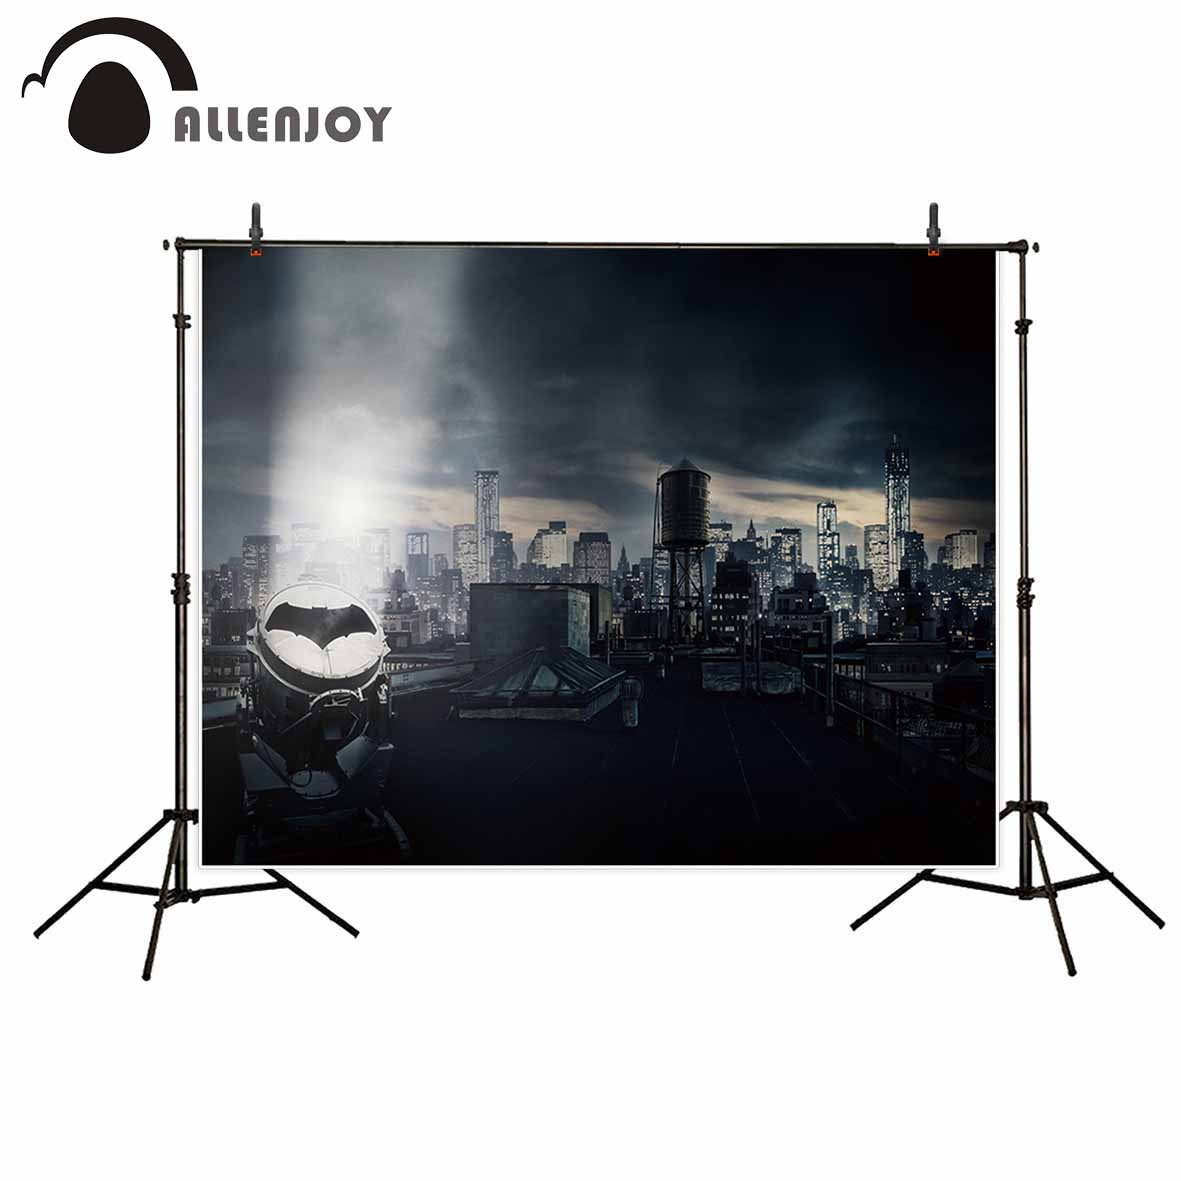 Allenjoy newborn photography background dark Batman city evenge super hero photo studio photocall high quality not blurry allenjoy photography backdrop library books student child newborn photo studio photocall background original design